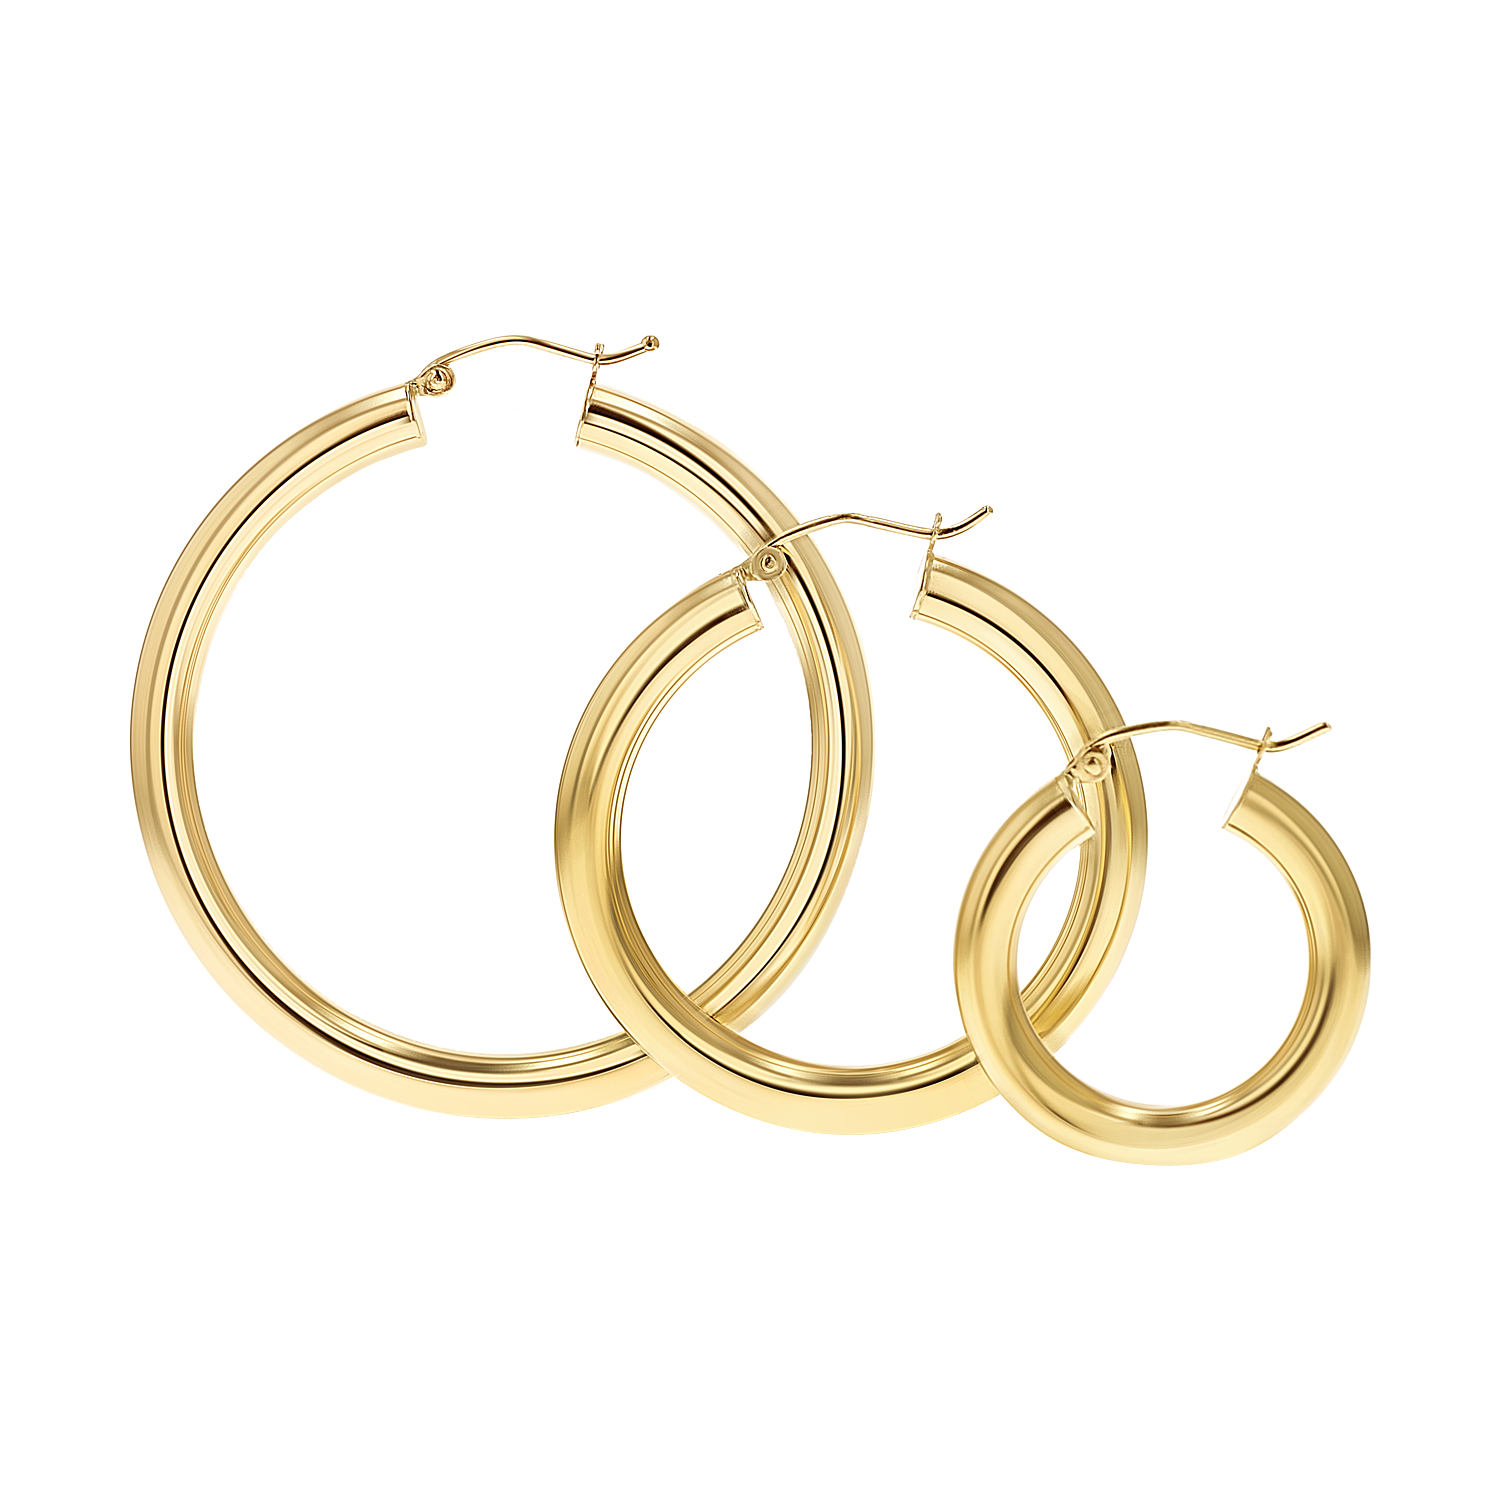 4mm Gold Tube Hoop Earrings